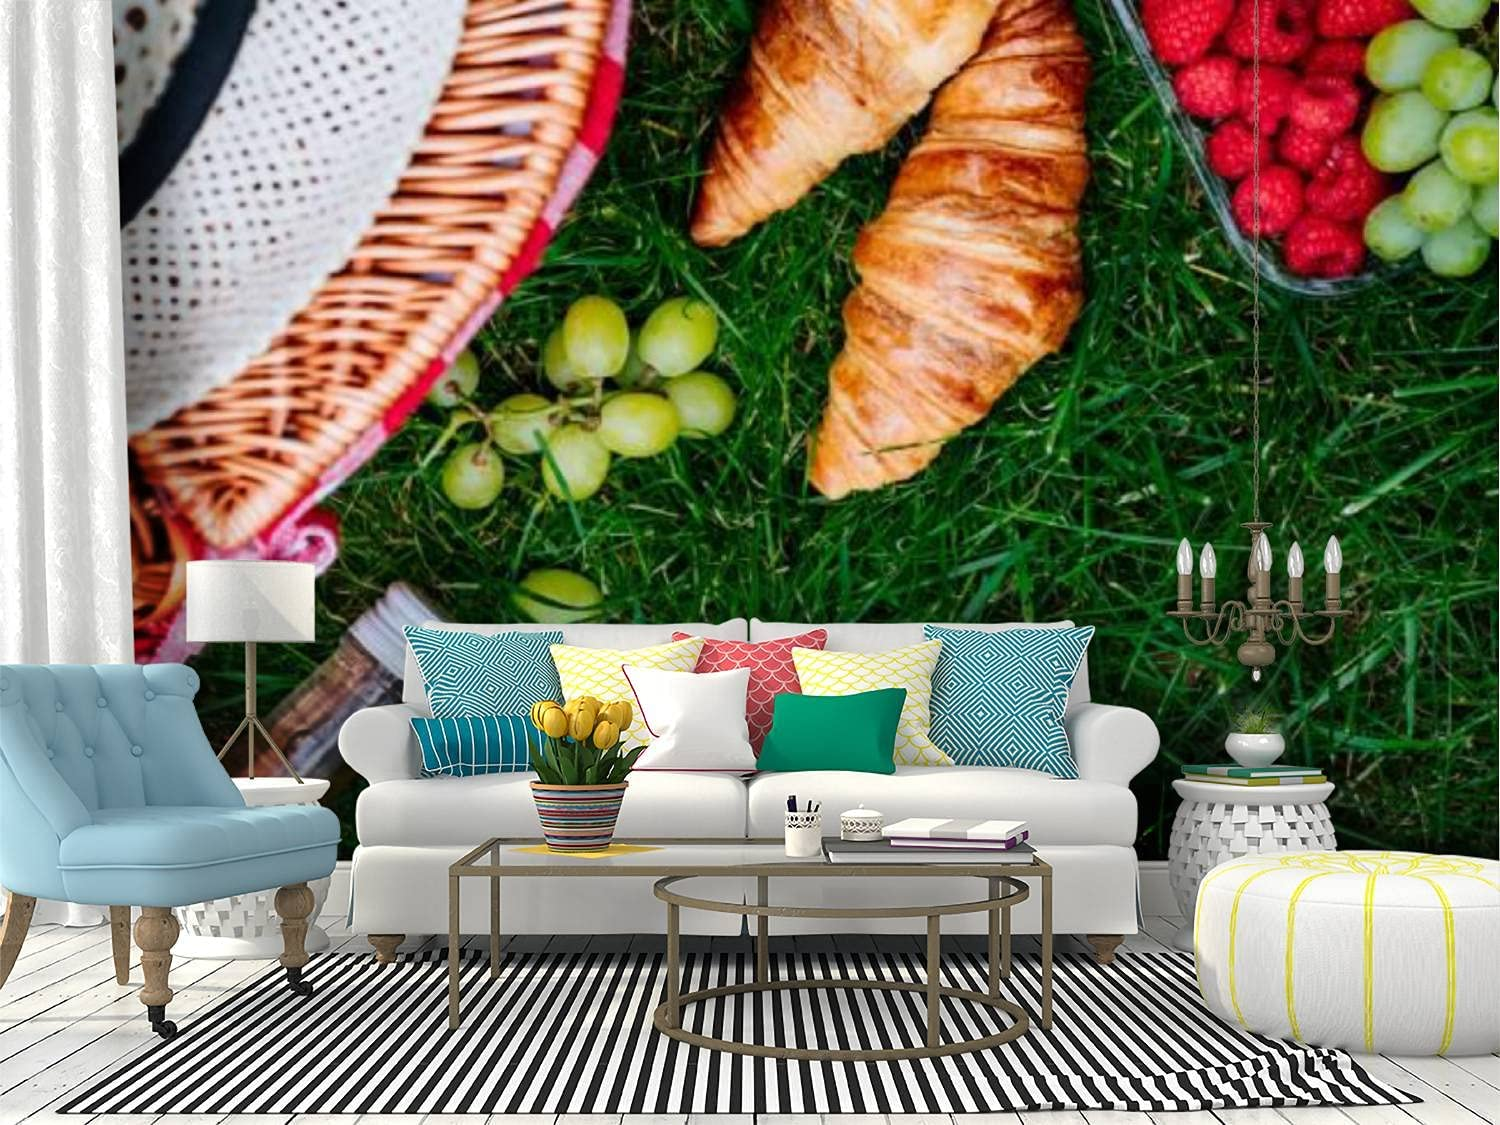 Wall All items in the store Mural Picnic at park Raspberry Manufacturer direct delivery grape on grass crois